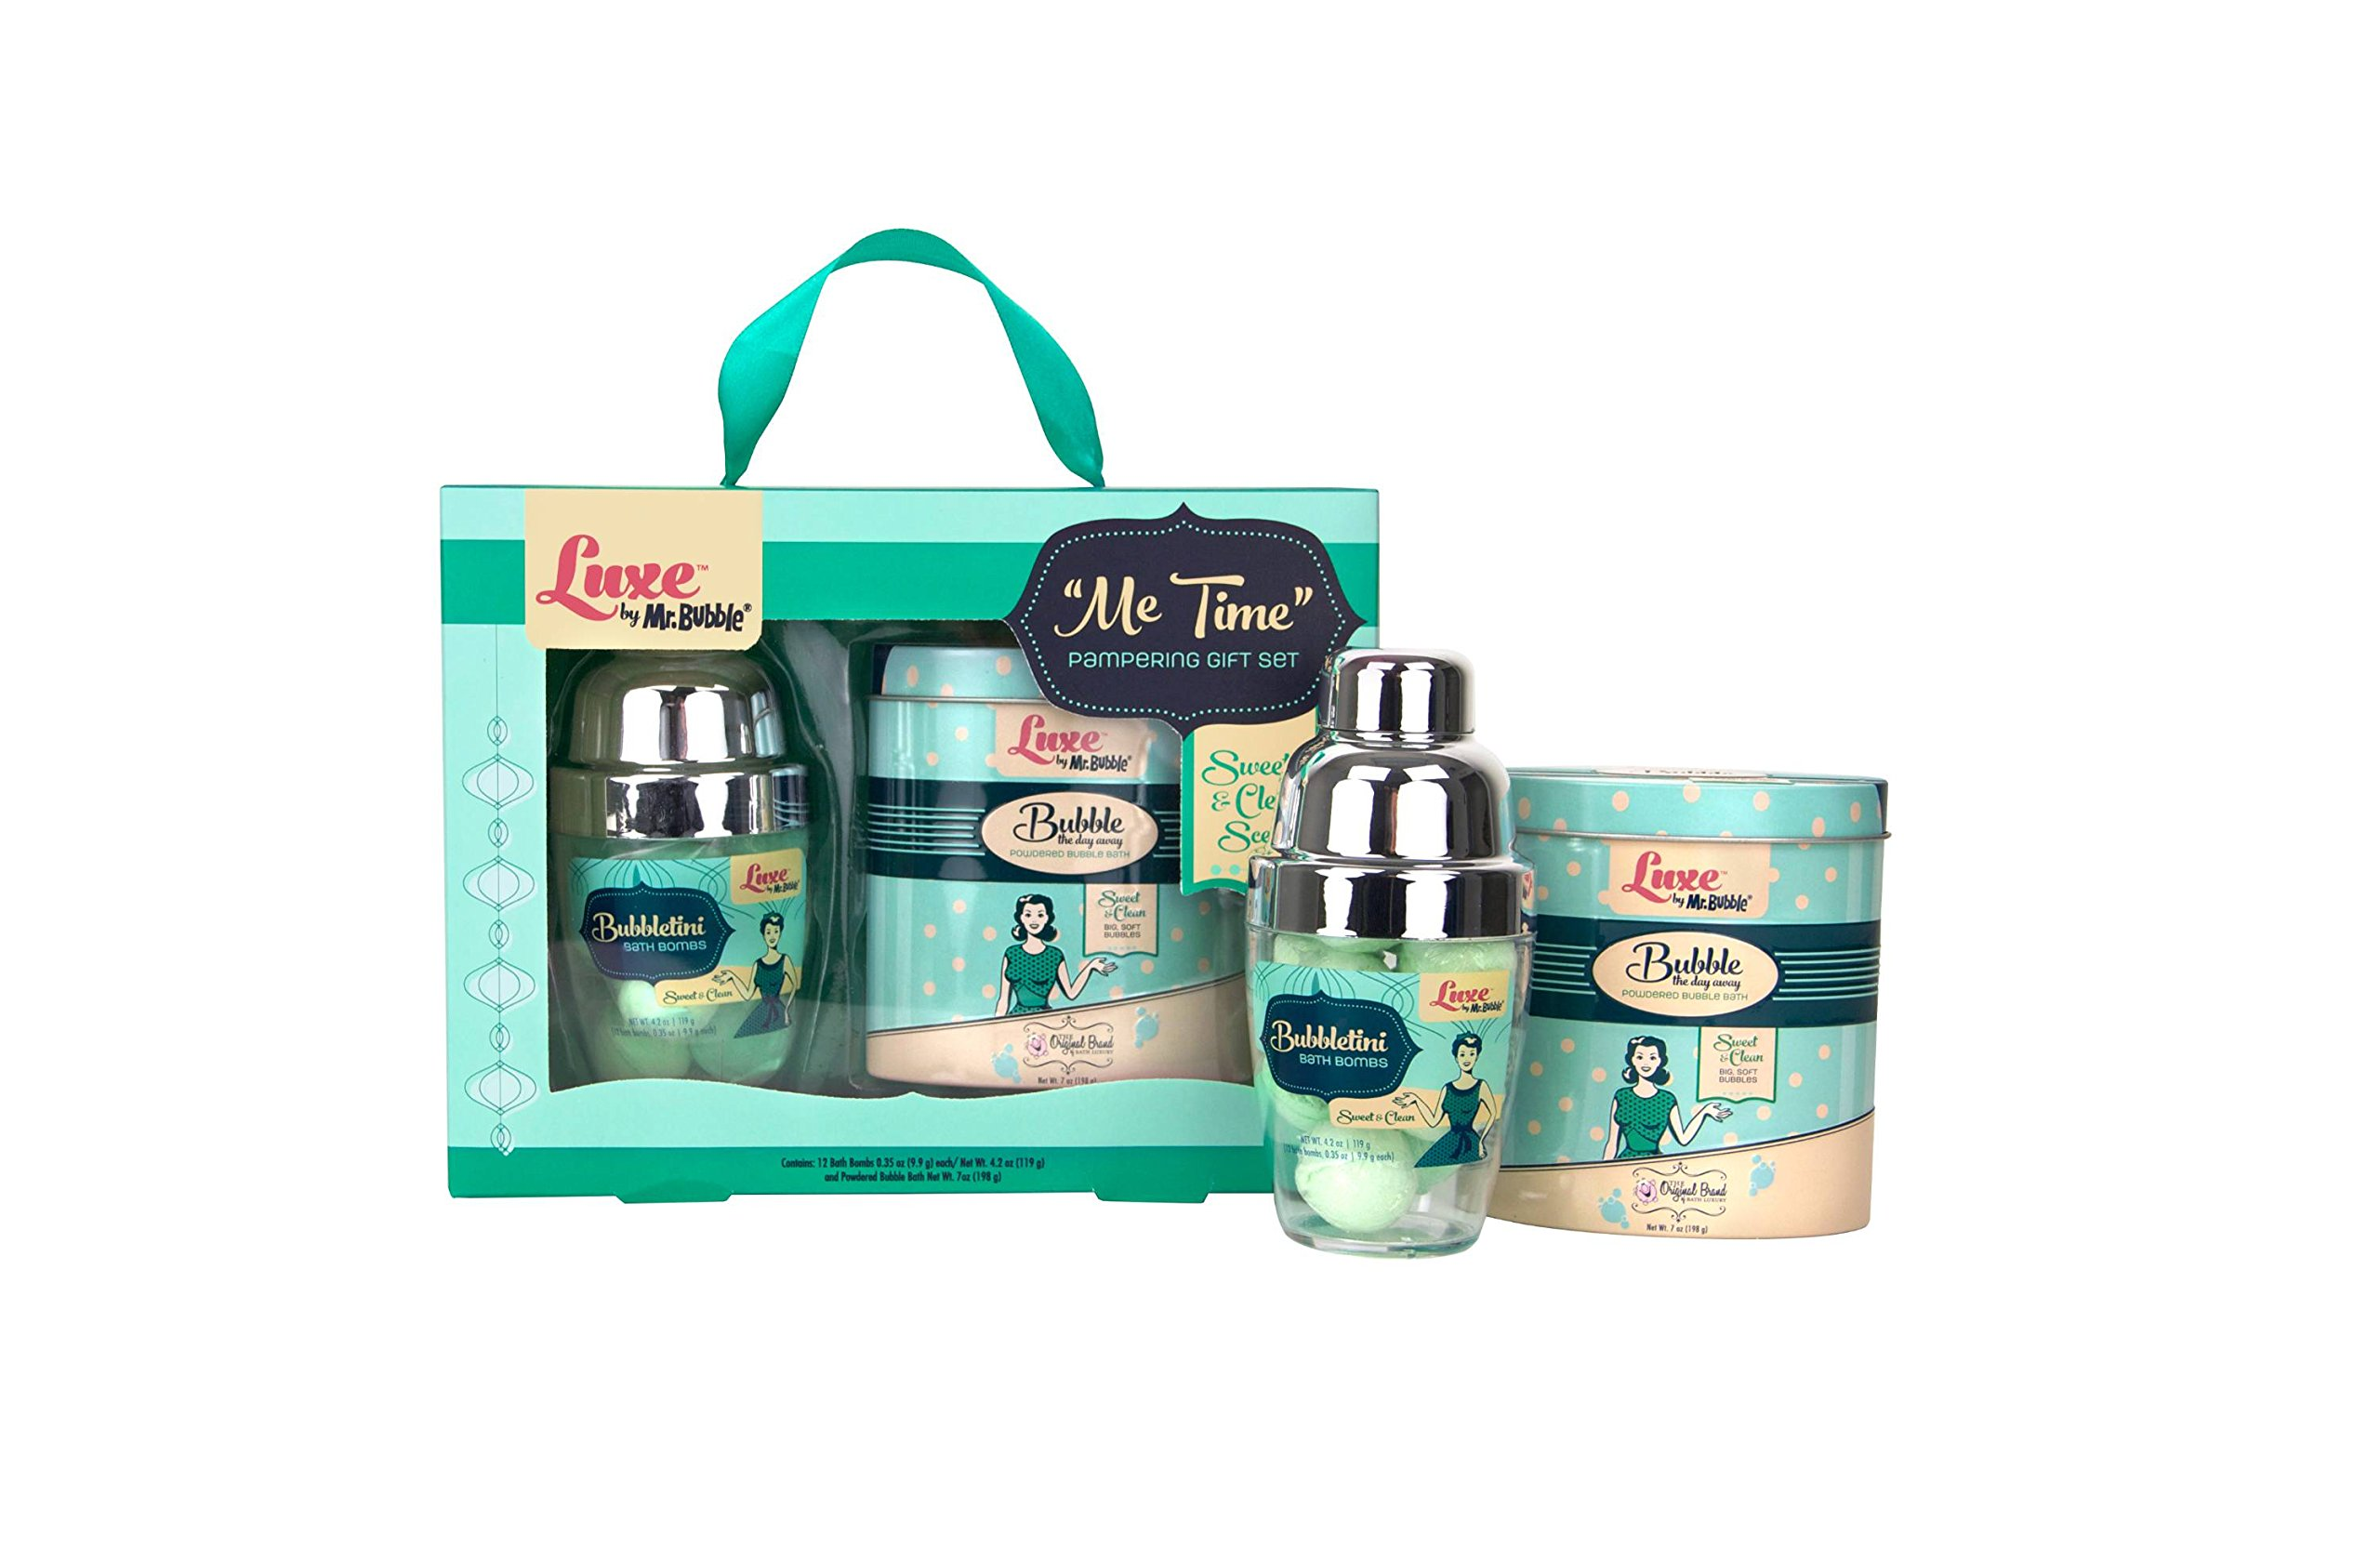 Mr. Bubble Luxe Bath And Body Gift Set, pack of 1 by Mr. Bubble